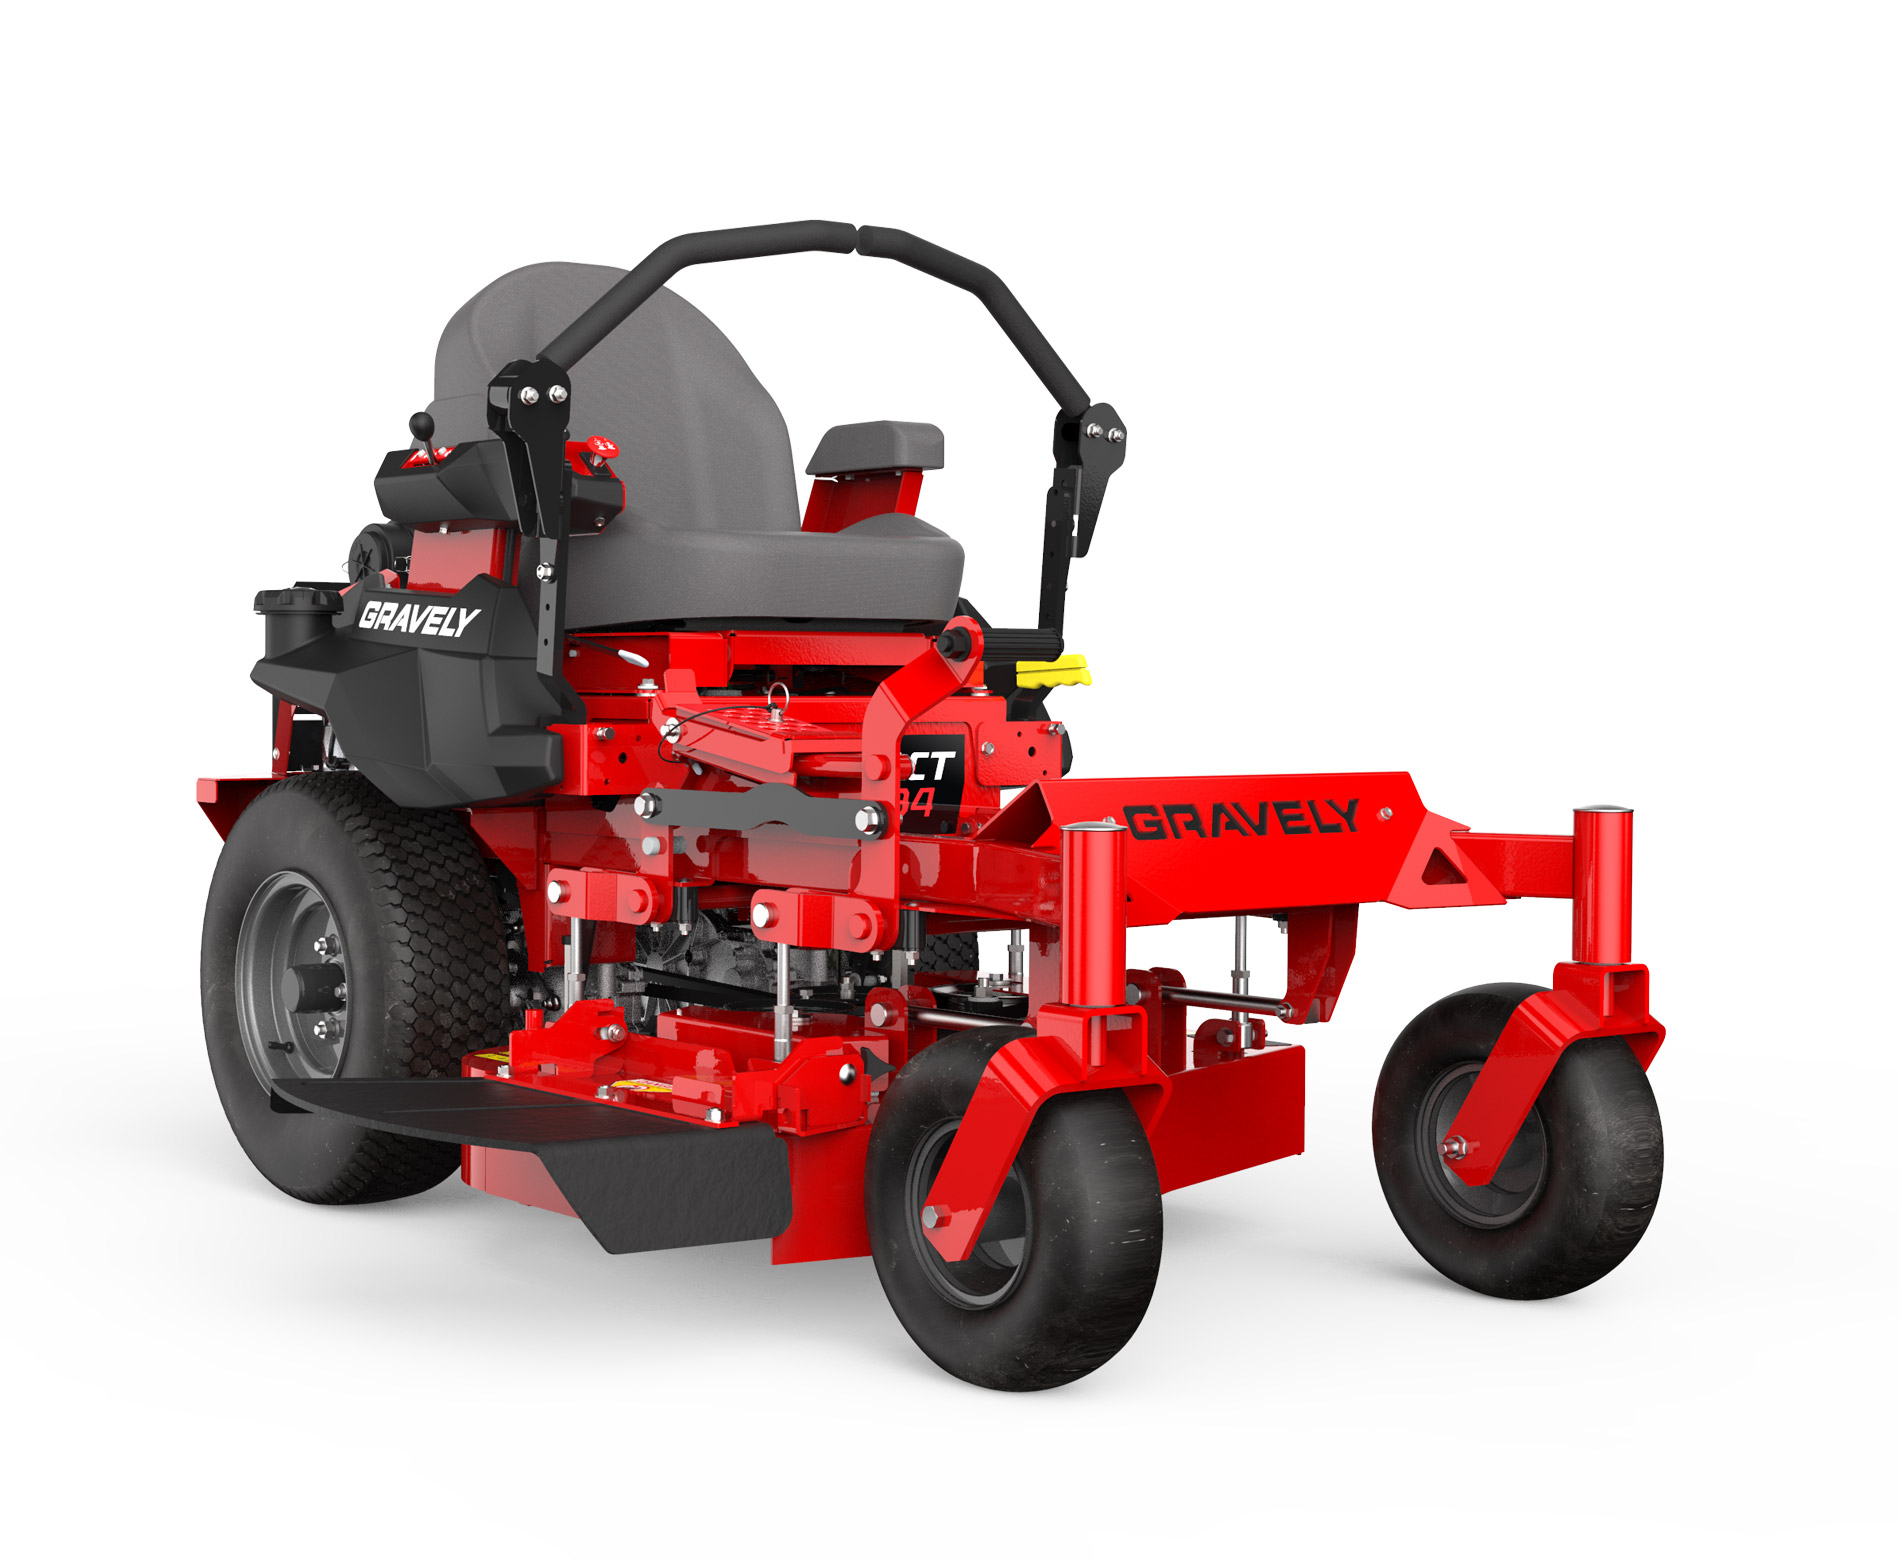 Gravely Compact Pro mower stock photo